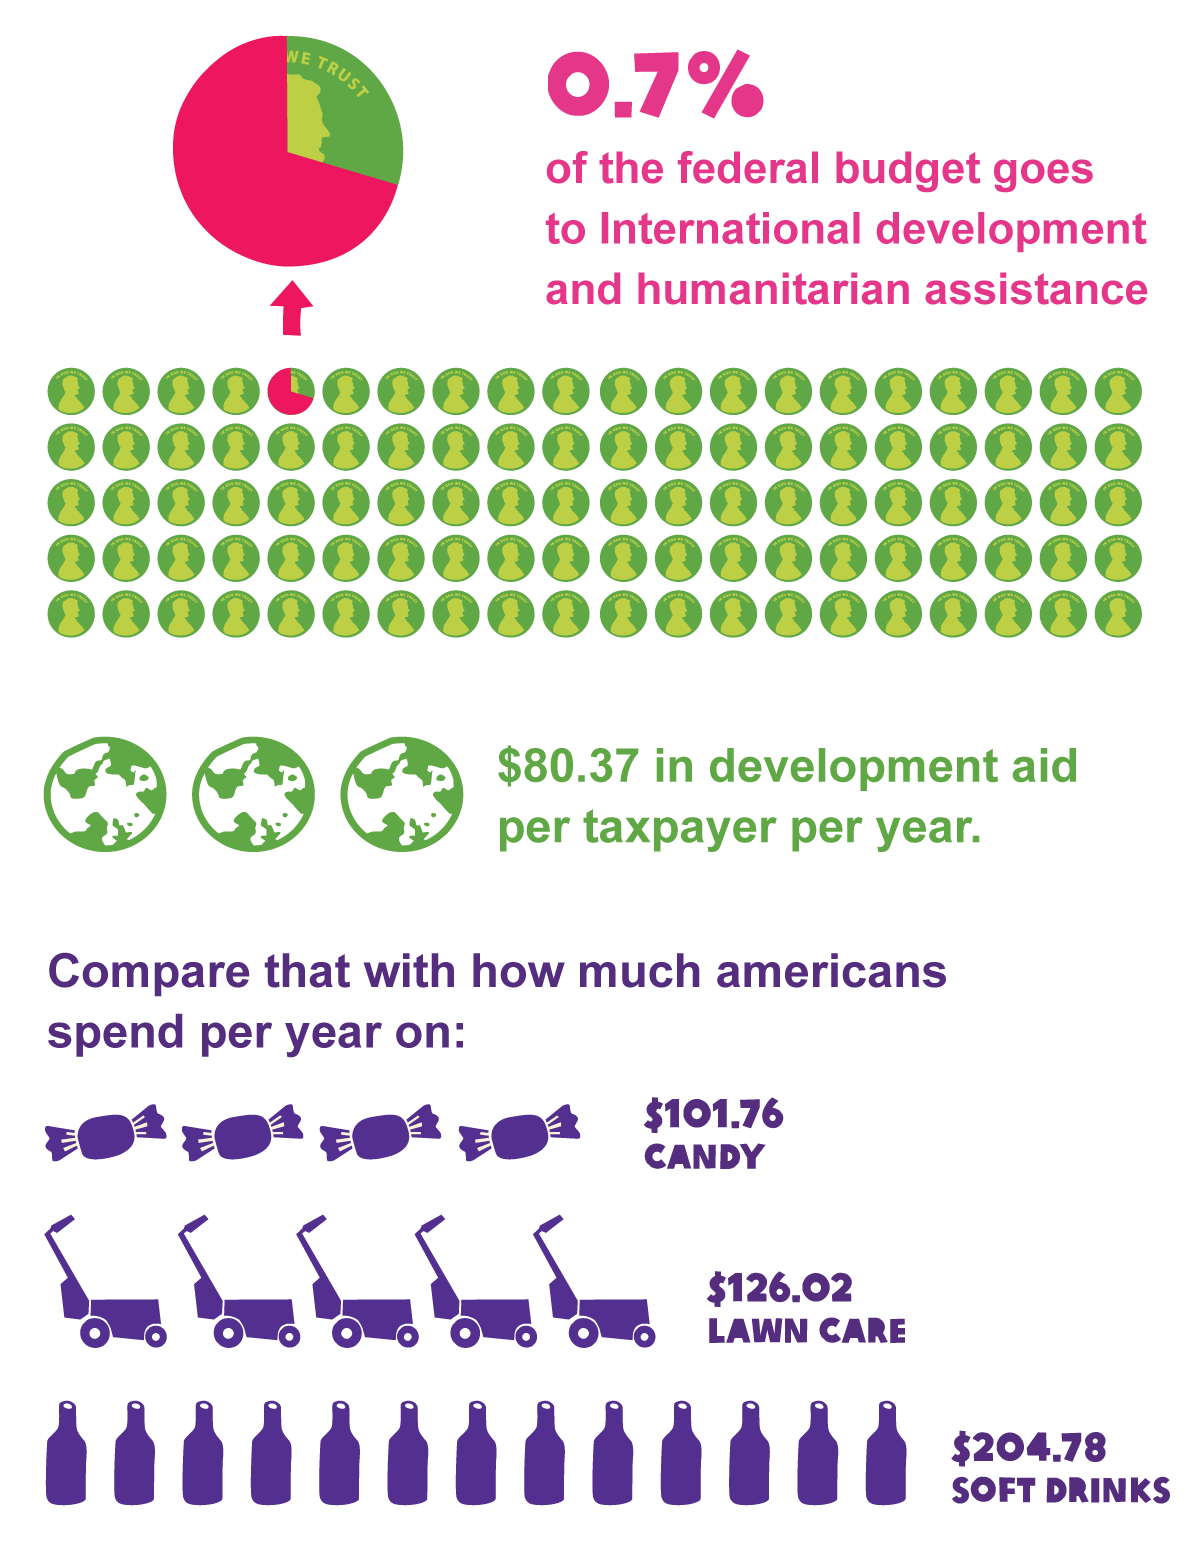 In what ways will US foreign aid not help solve world hunger?